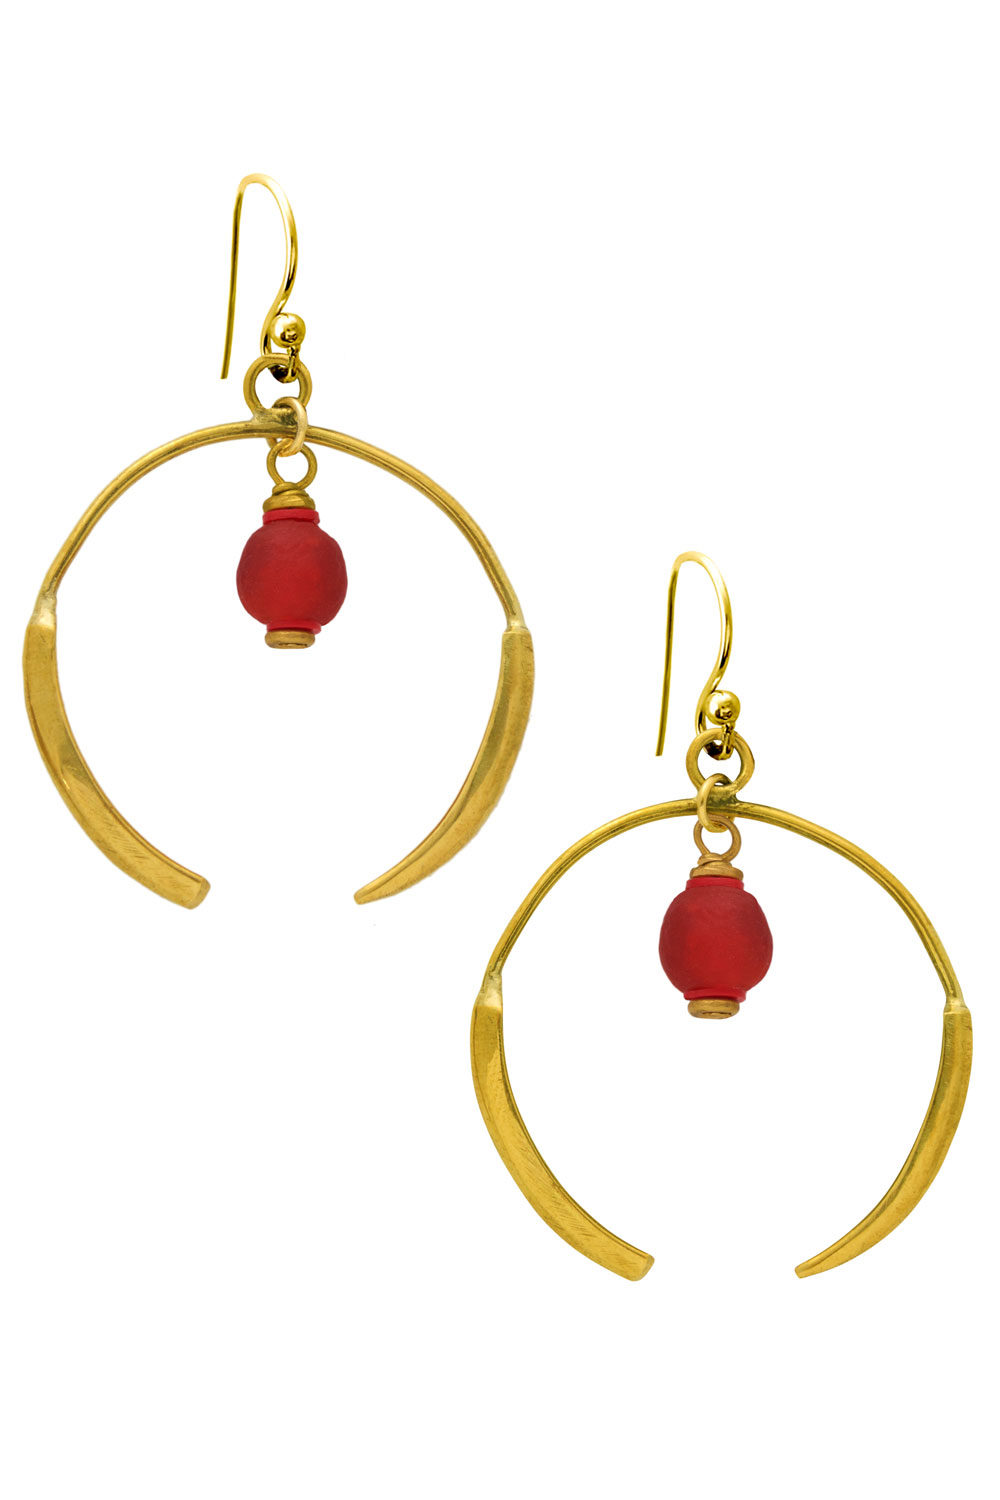 Nyekundu Red Aza Earrings by SHIKHAZURI